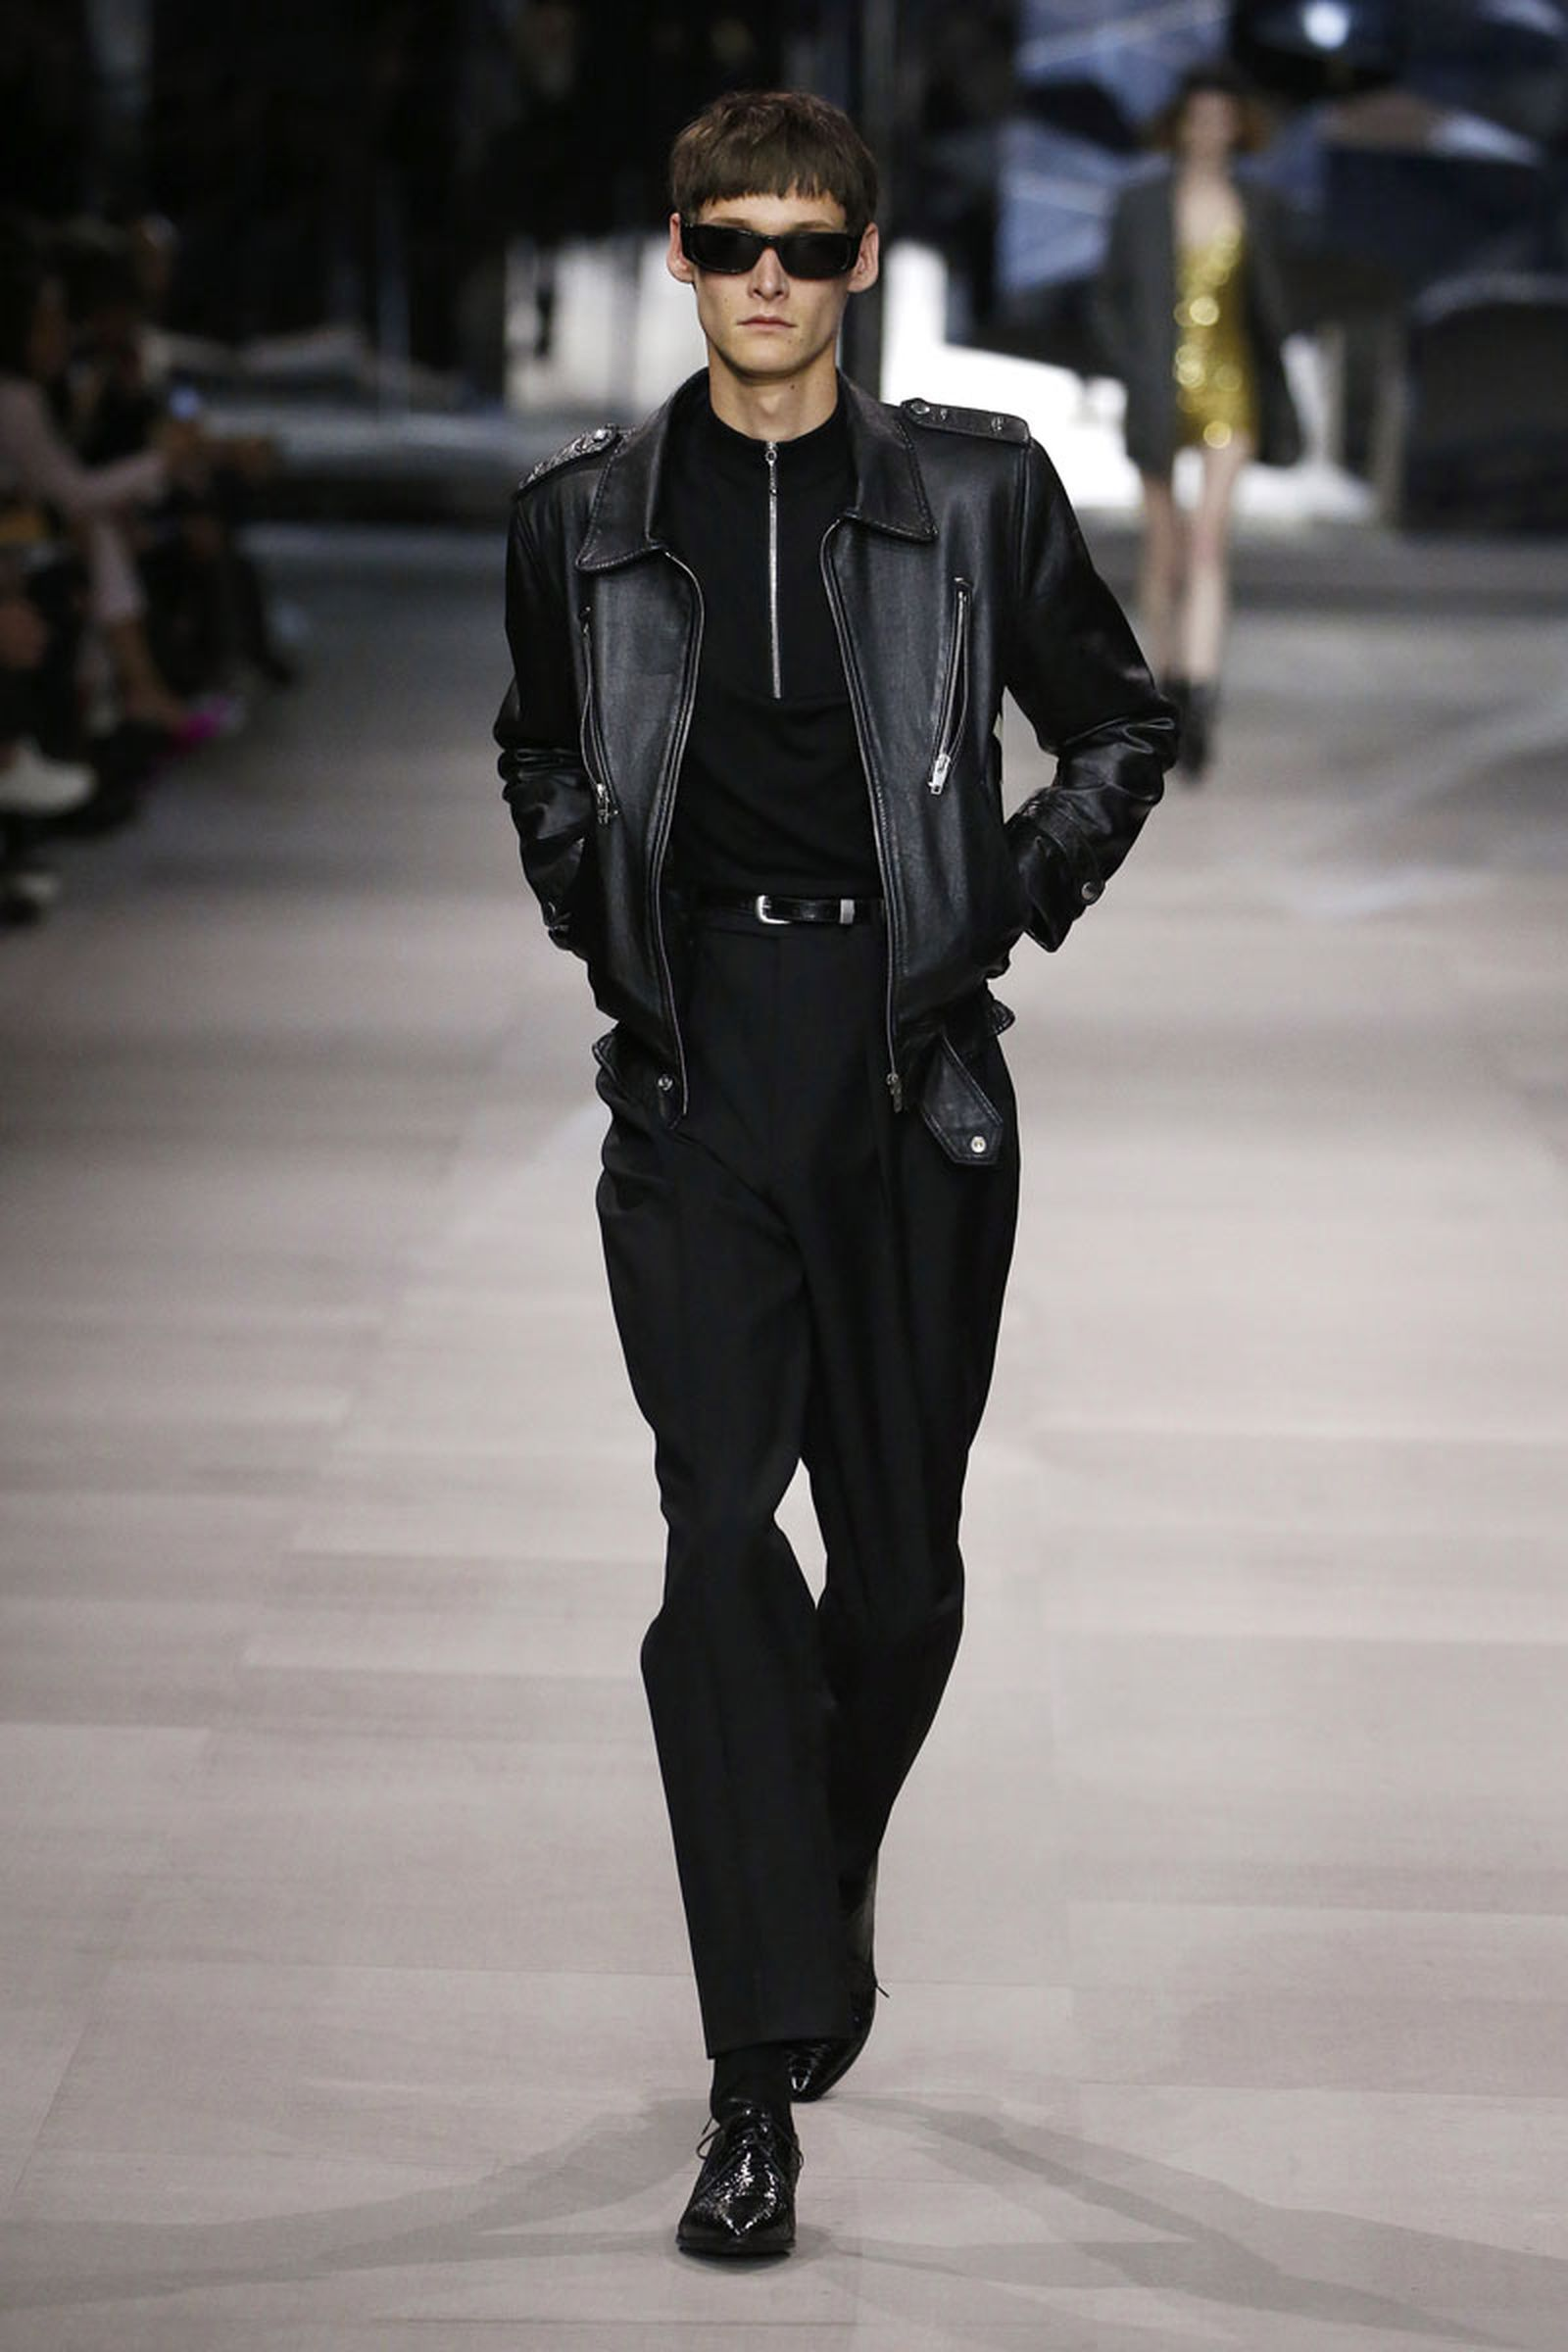 Celine : Runway Paris Fashion Week Womenswear Spring/Summer 2019 hedi slimane